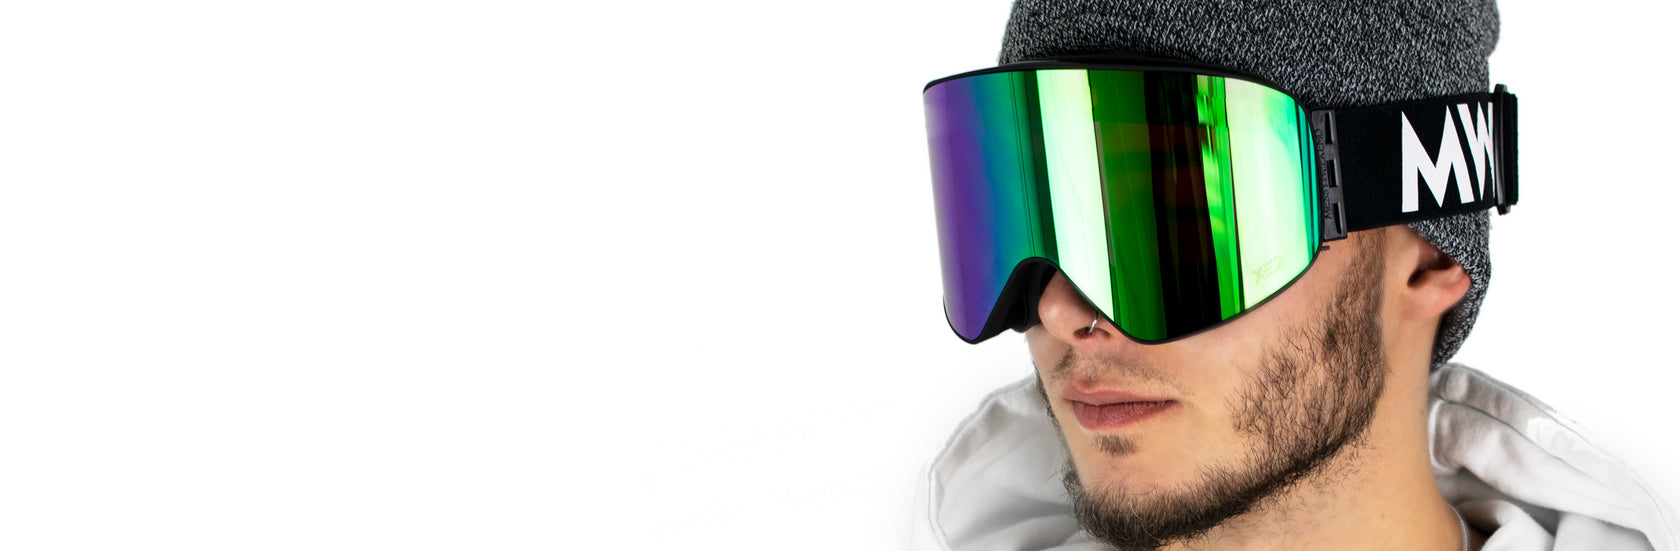 BUNDLE: SKI GOGGLES PLUS LENS or strap